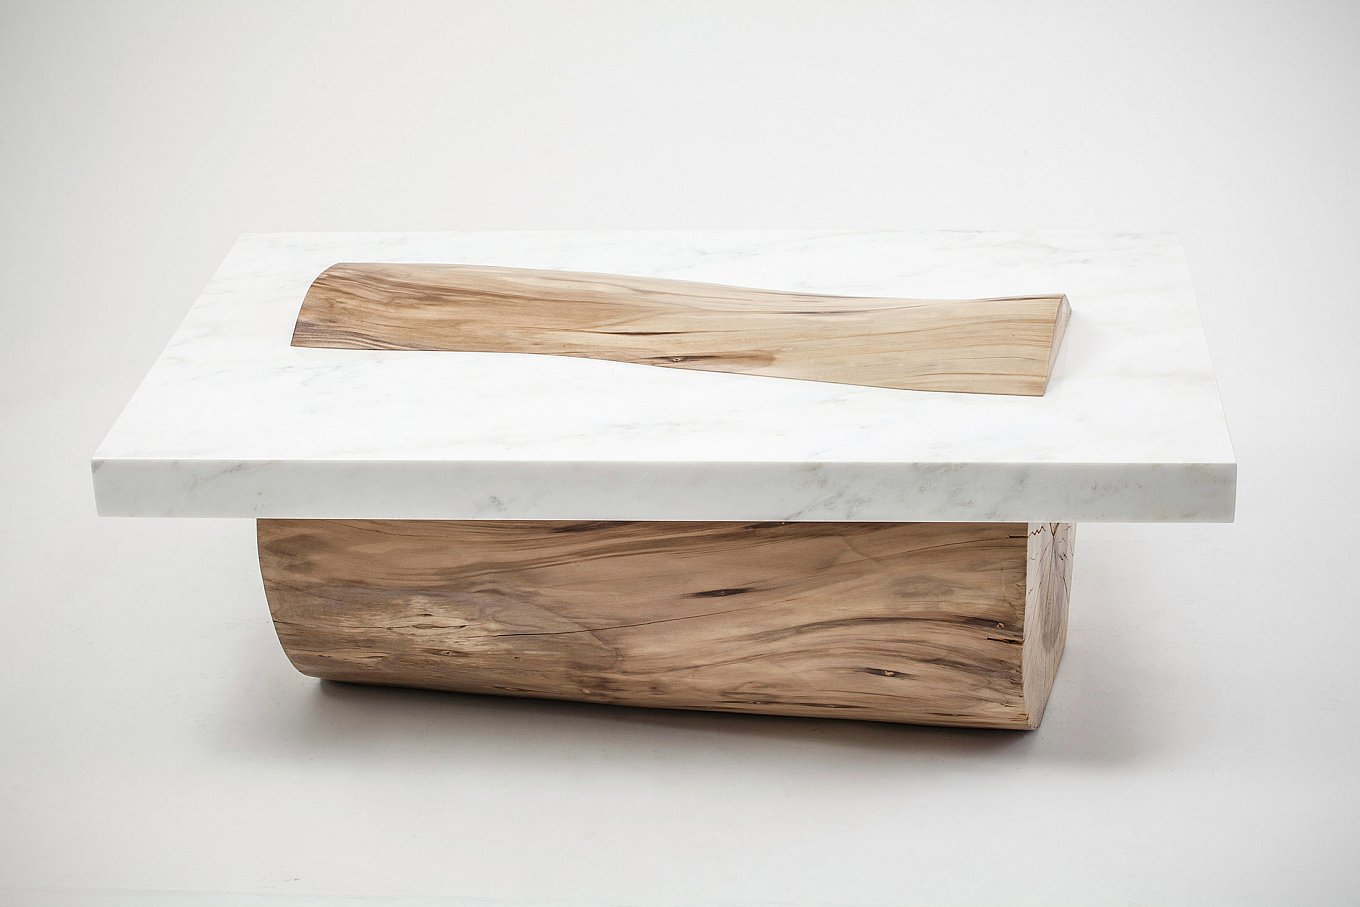 sculptural-coffee-table-by-marc-englander-gessato-2